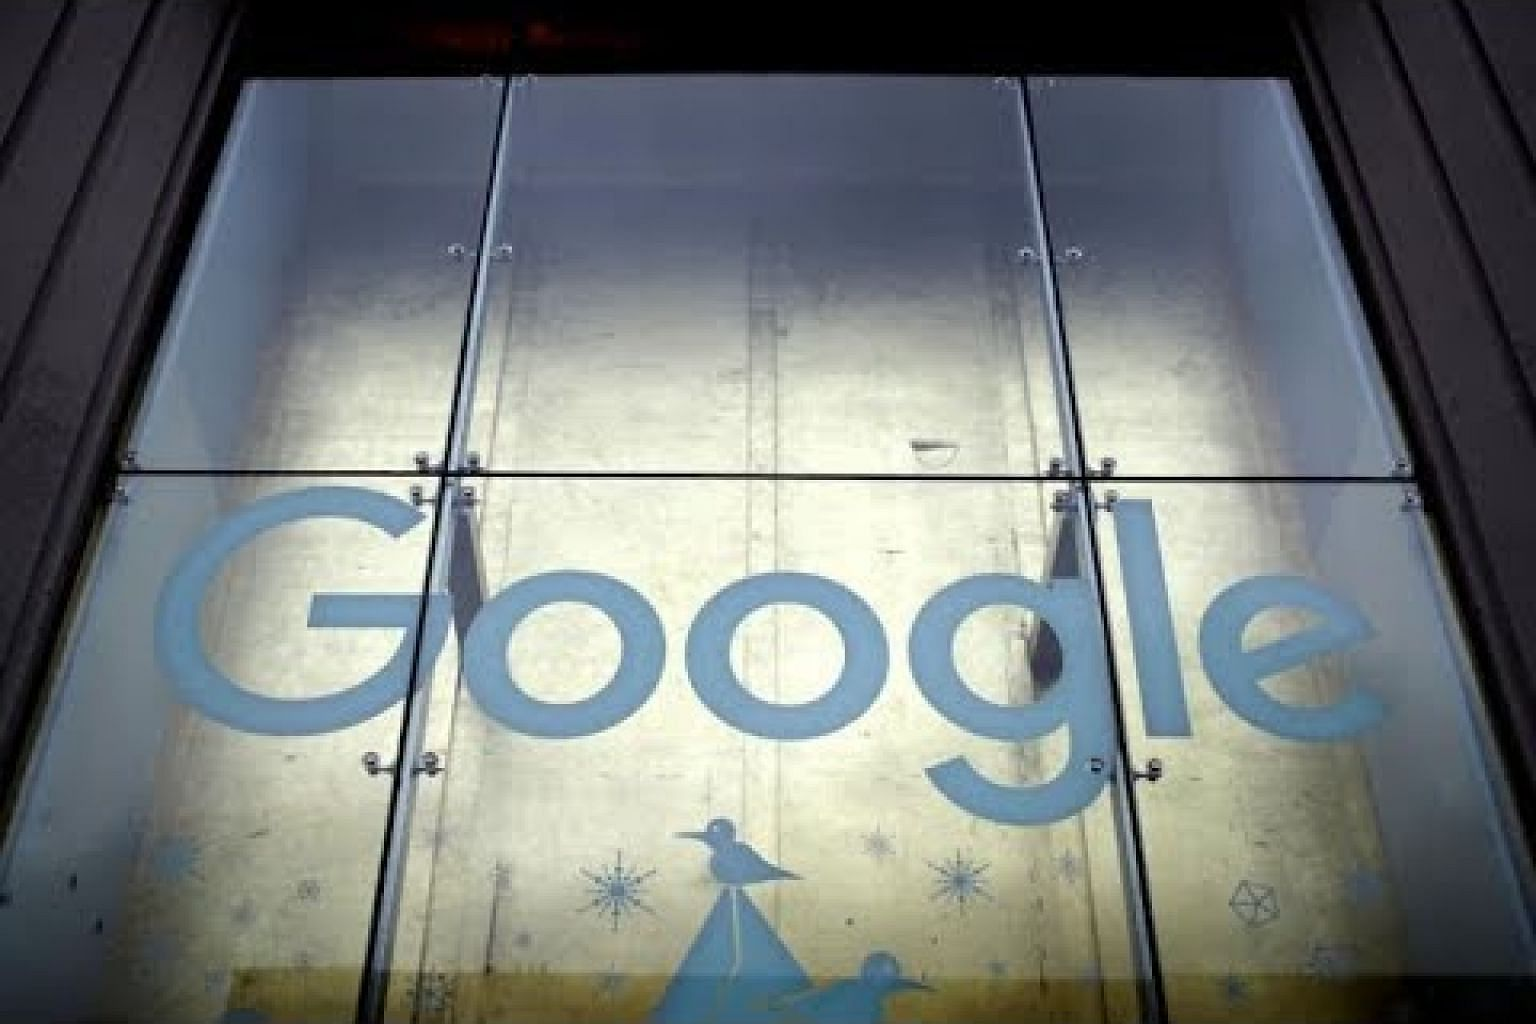 EU fines Google S$2.3b for blocking advertising rivals